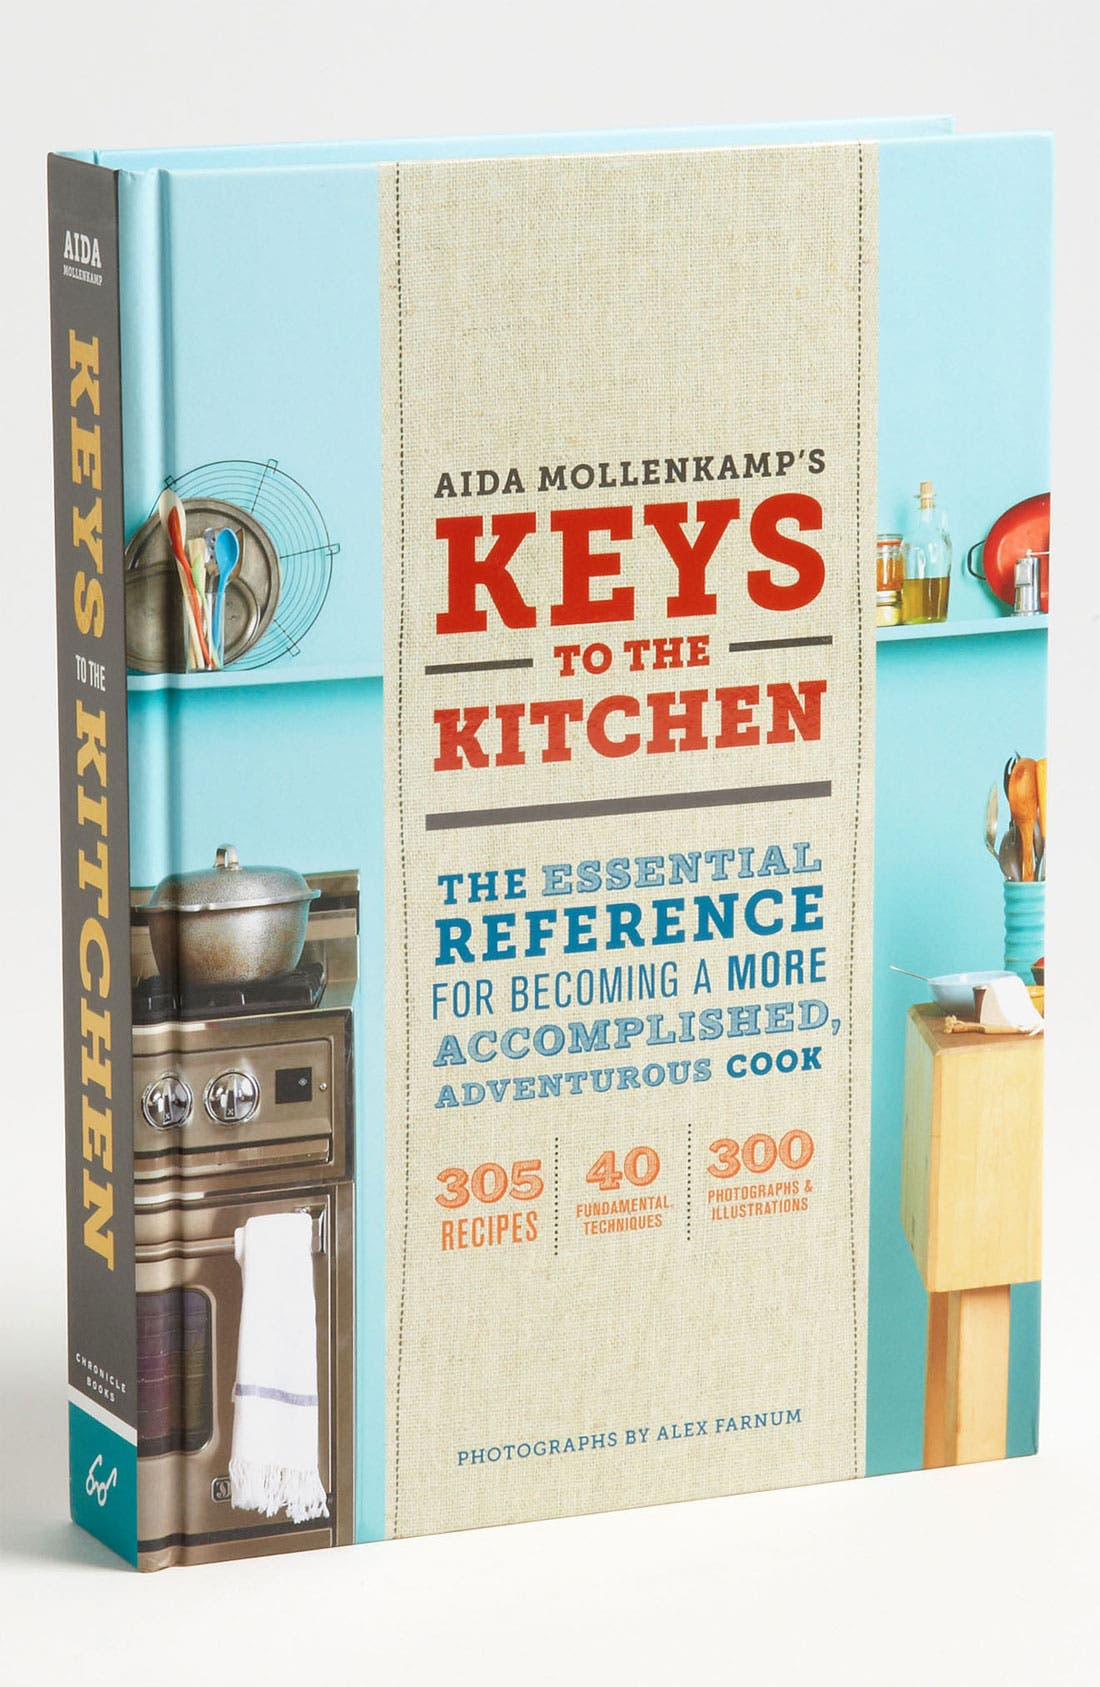 Alternate Image 1 Selected - 'Aida Mollenkamp's Keys To The Kitchen' Reference & Cookbook